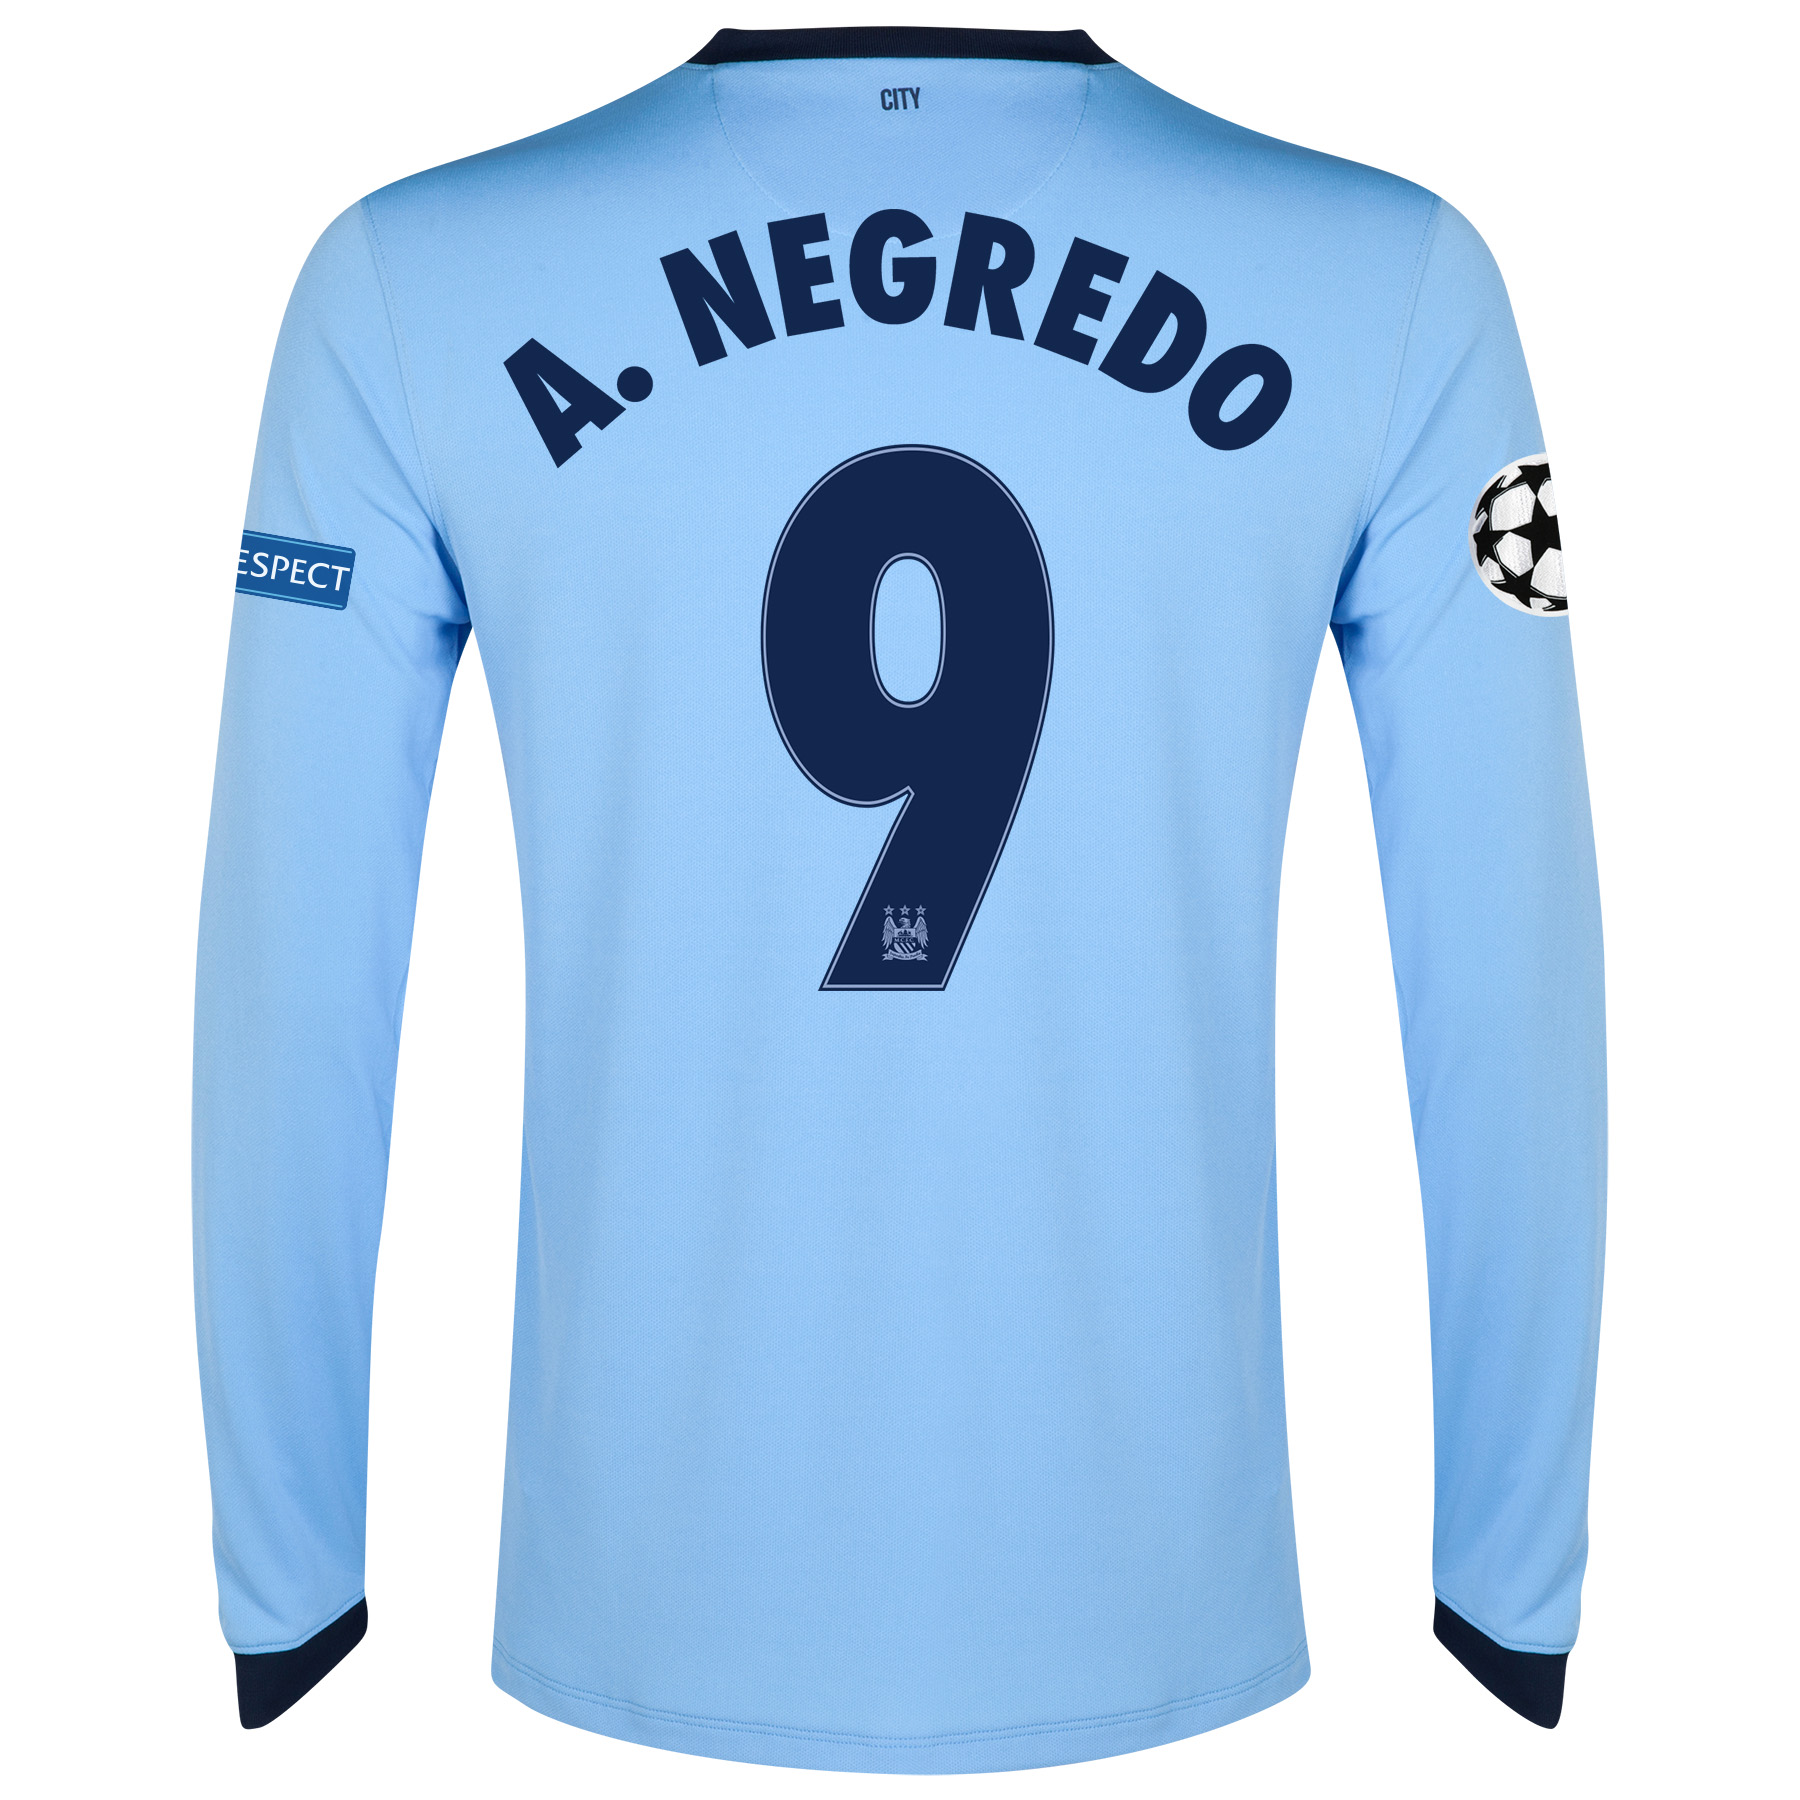 Manchester City UEFA Champions League Home Shirt 2014/15 - Long Sleeve - Kids Sky Blue with A.Negredo 9 printing